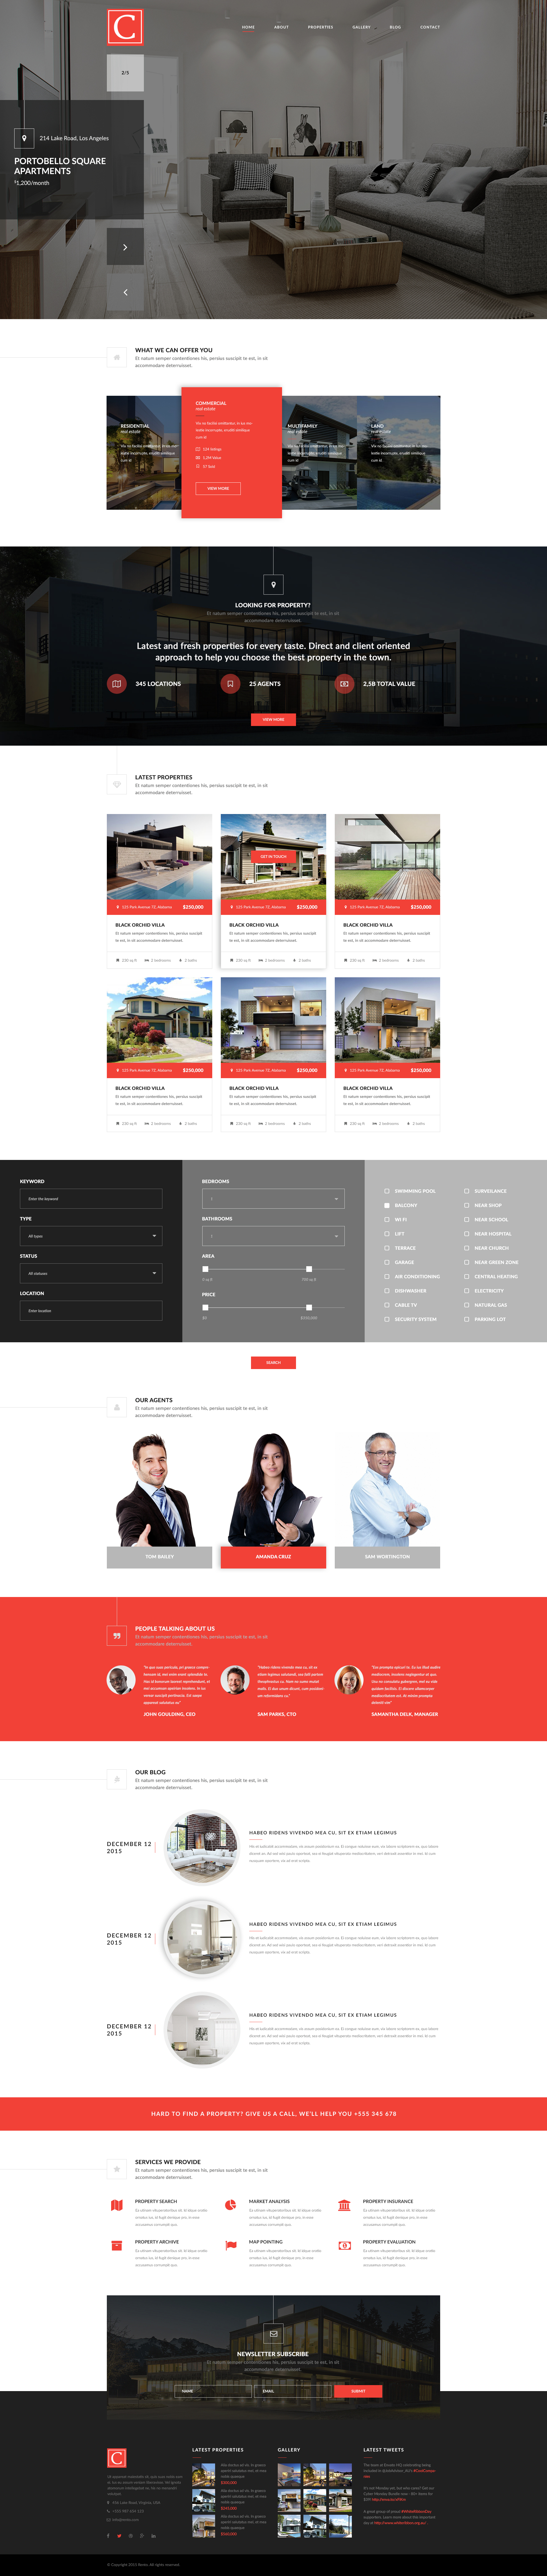 Chamwebdesign-realstate6